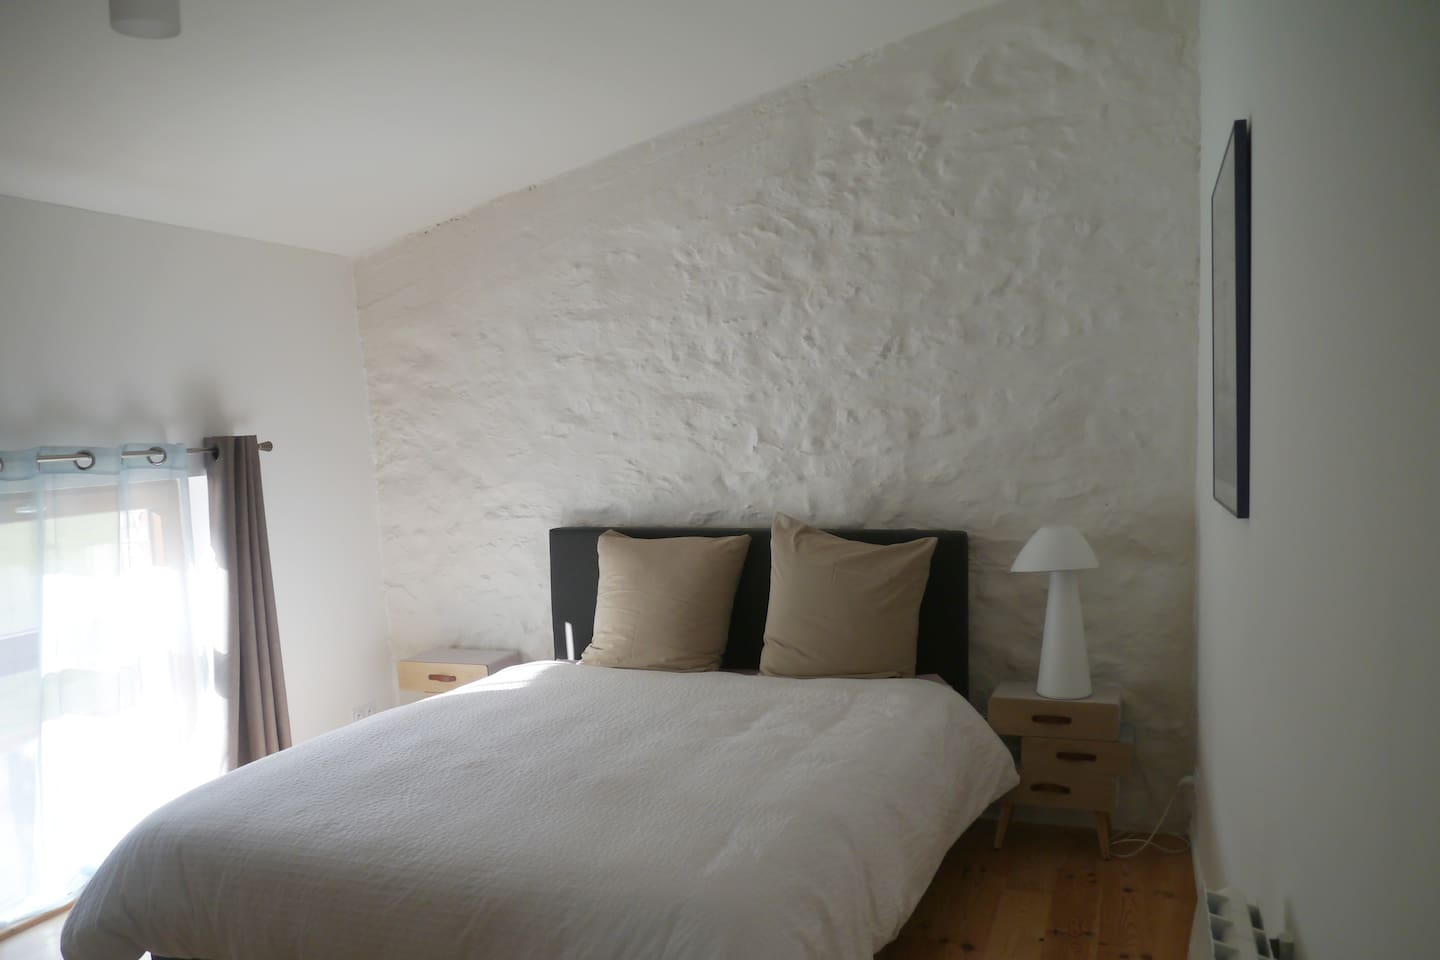 The spacious bedroom with ensuite bathroom, comes furnished with a kingsize bed and large wardrobe, (and radiator or fan dependant on season).  It overlooks the garden, field and mountains in the distance